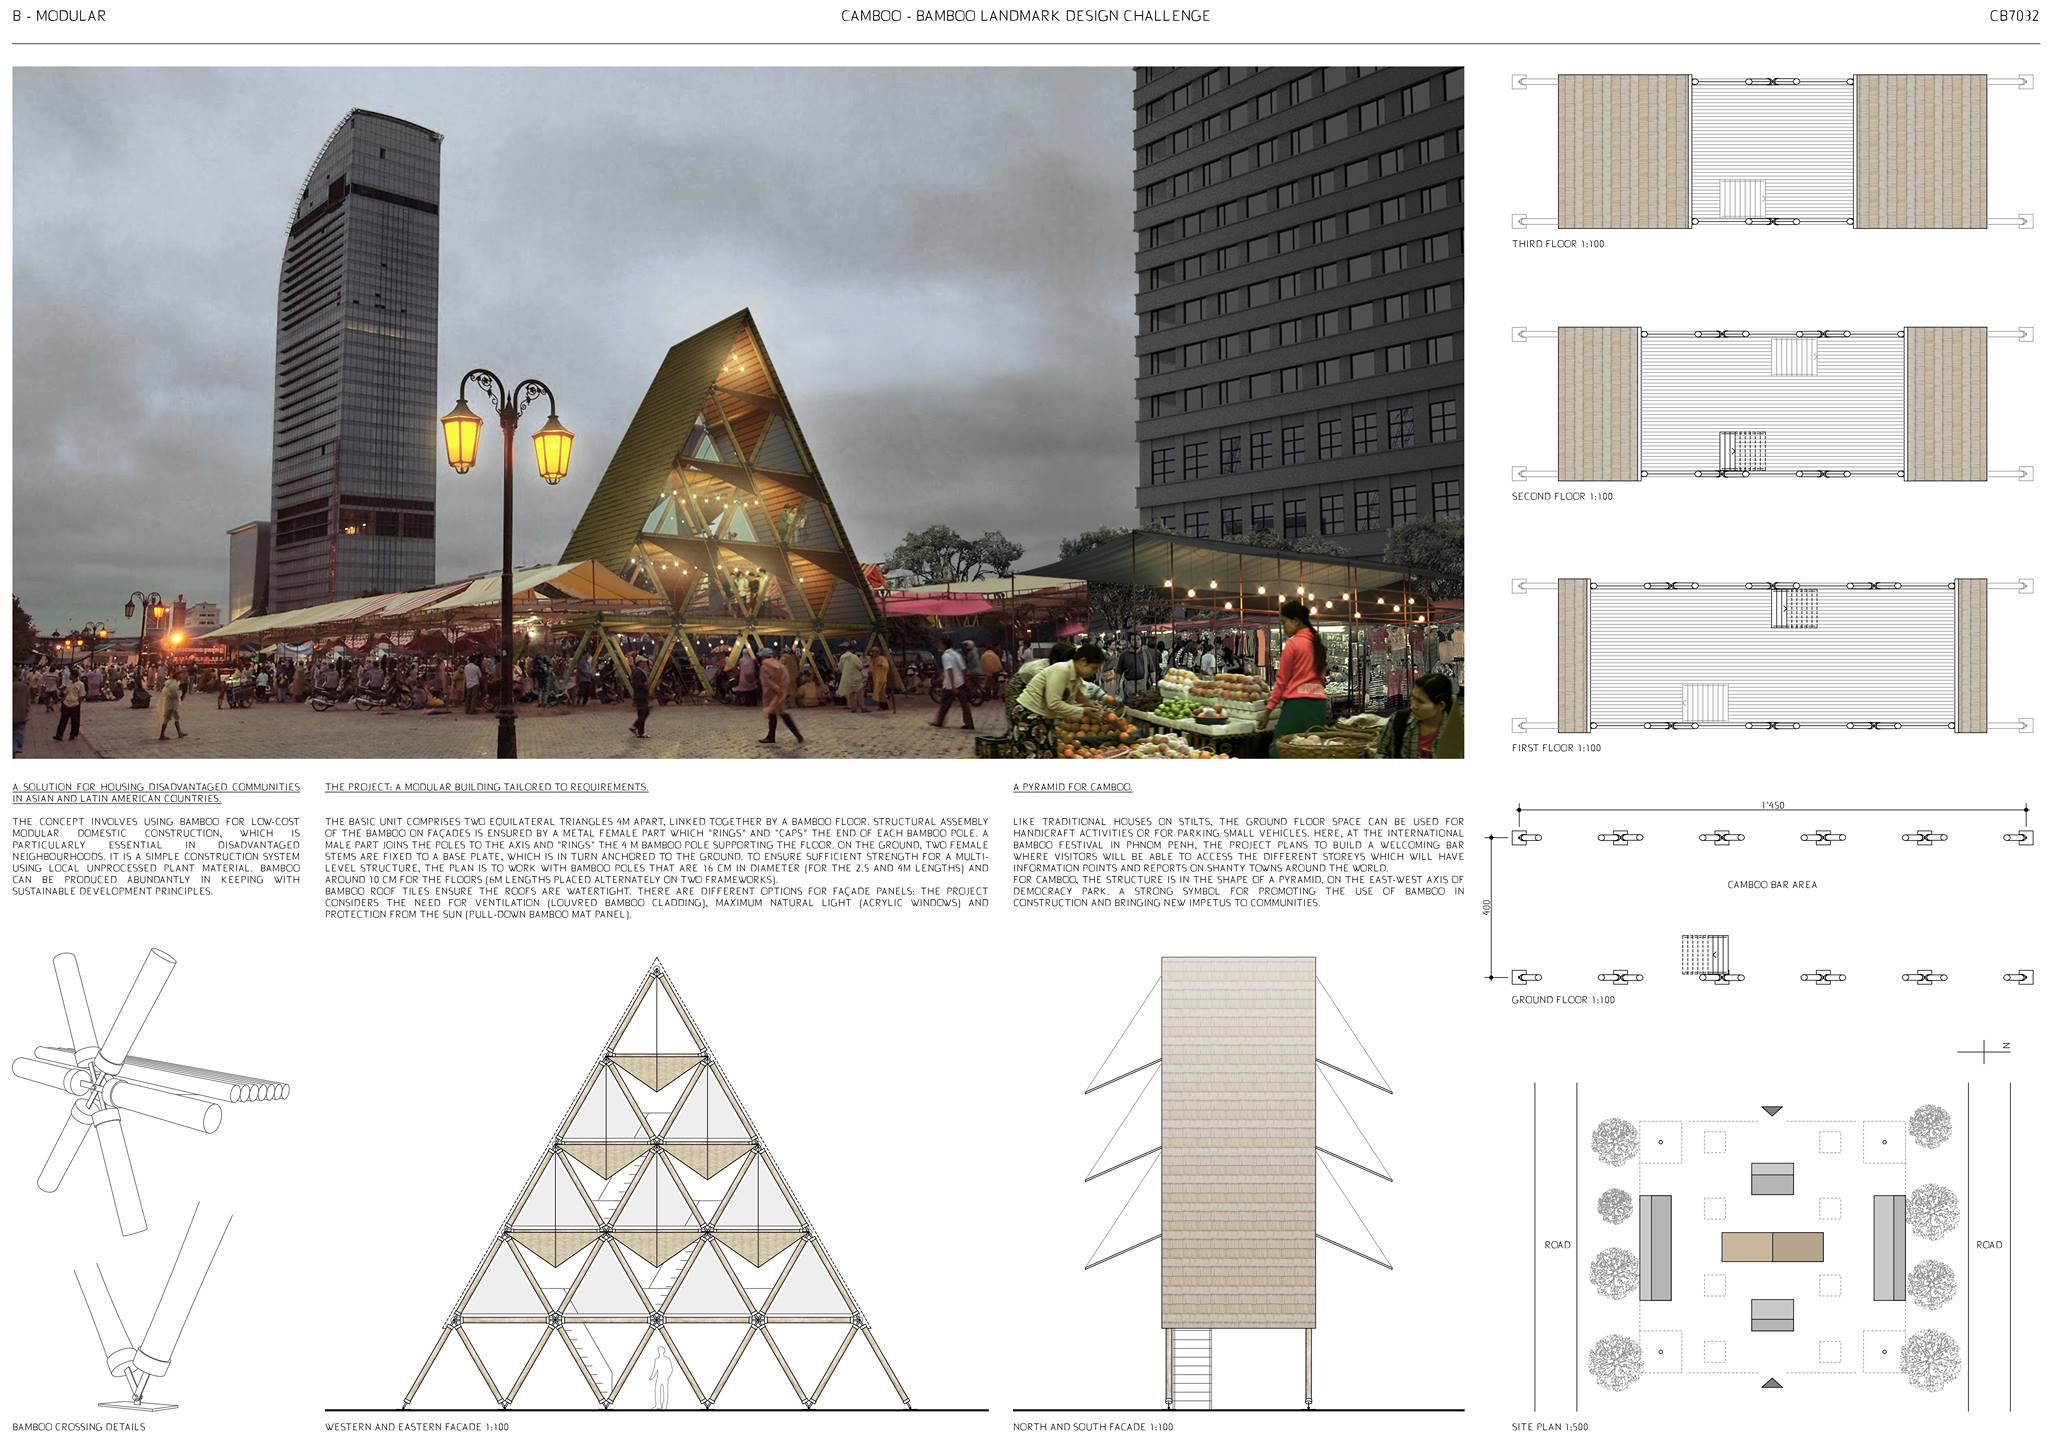 HONOURABLE MENTION: 'B-MODULAR' by Jean-Pierre Dind, Stéphane Link, Steve Gerbex and Steve Rouiller from  LINK architectes in Switzerland